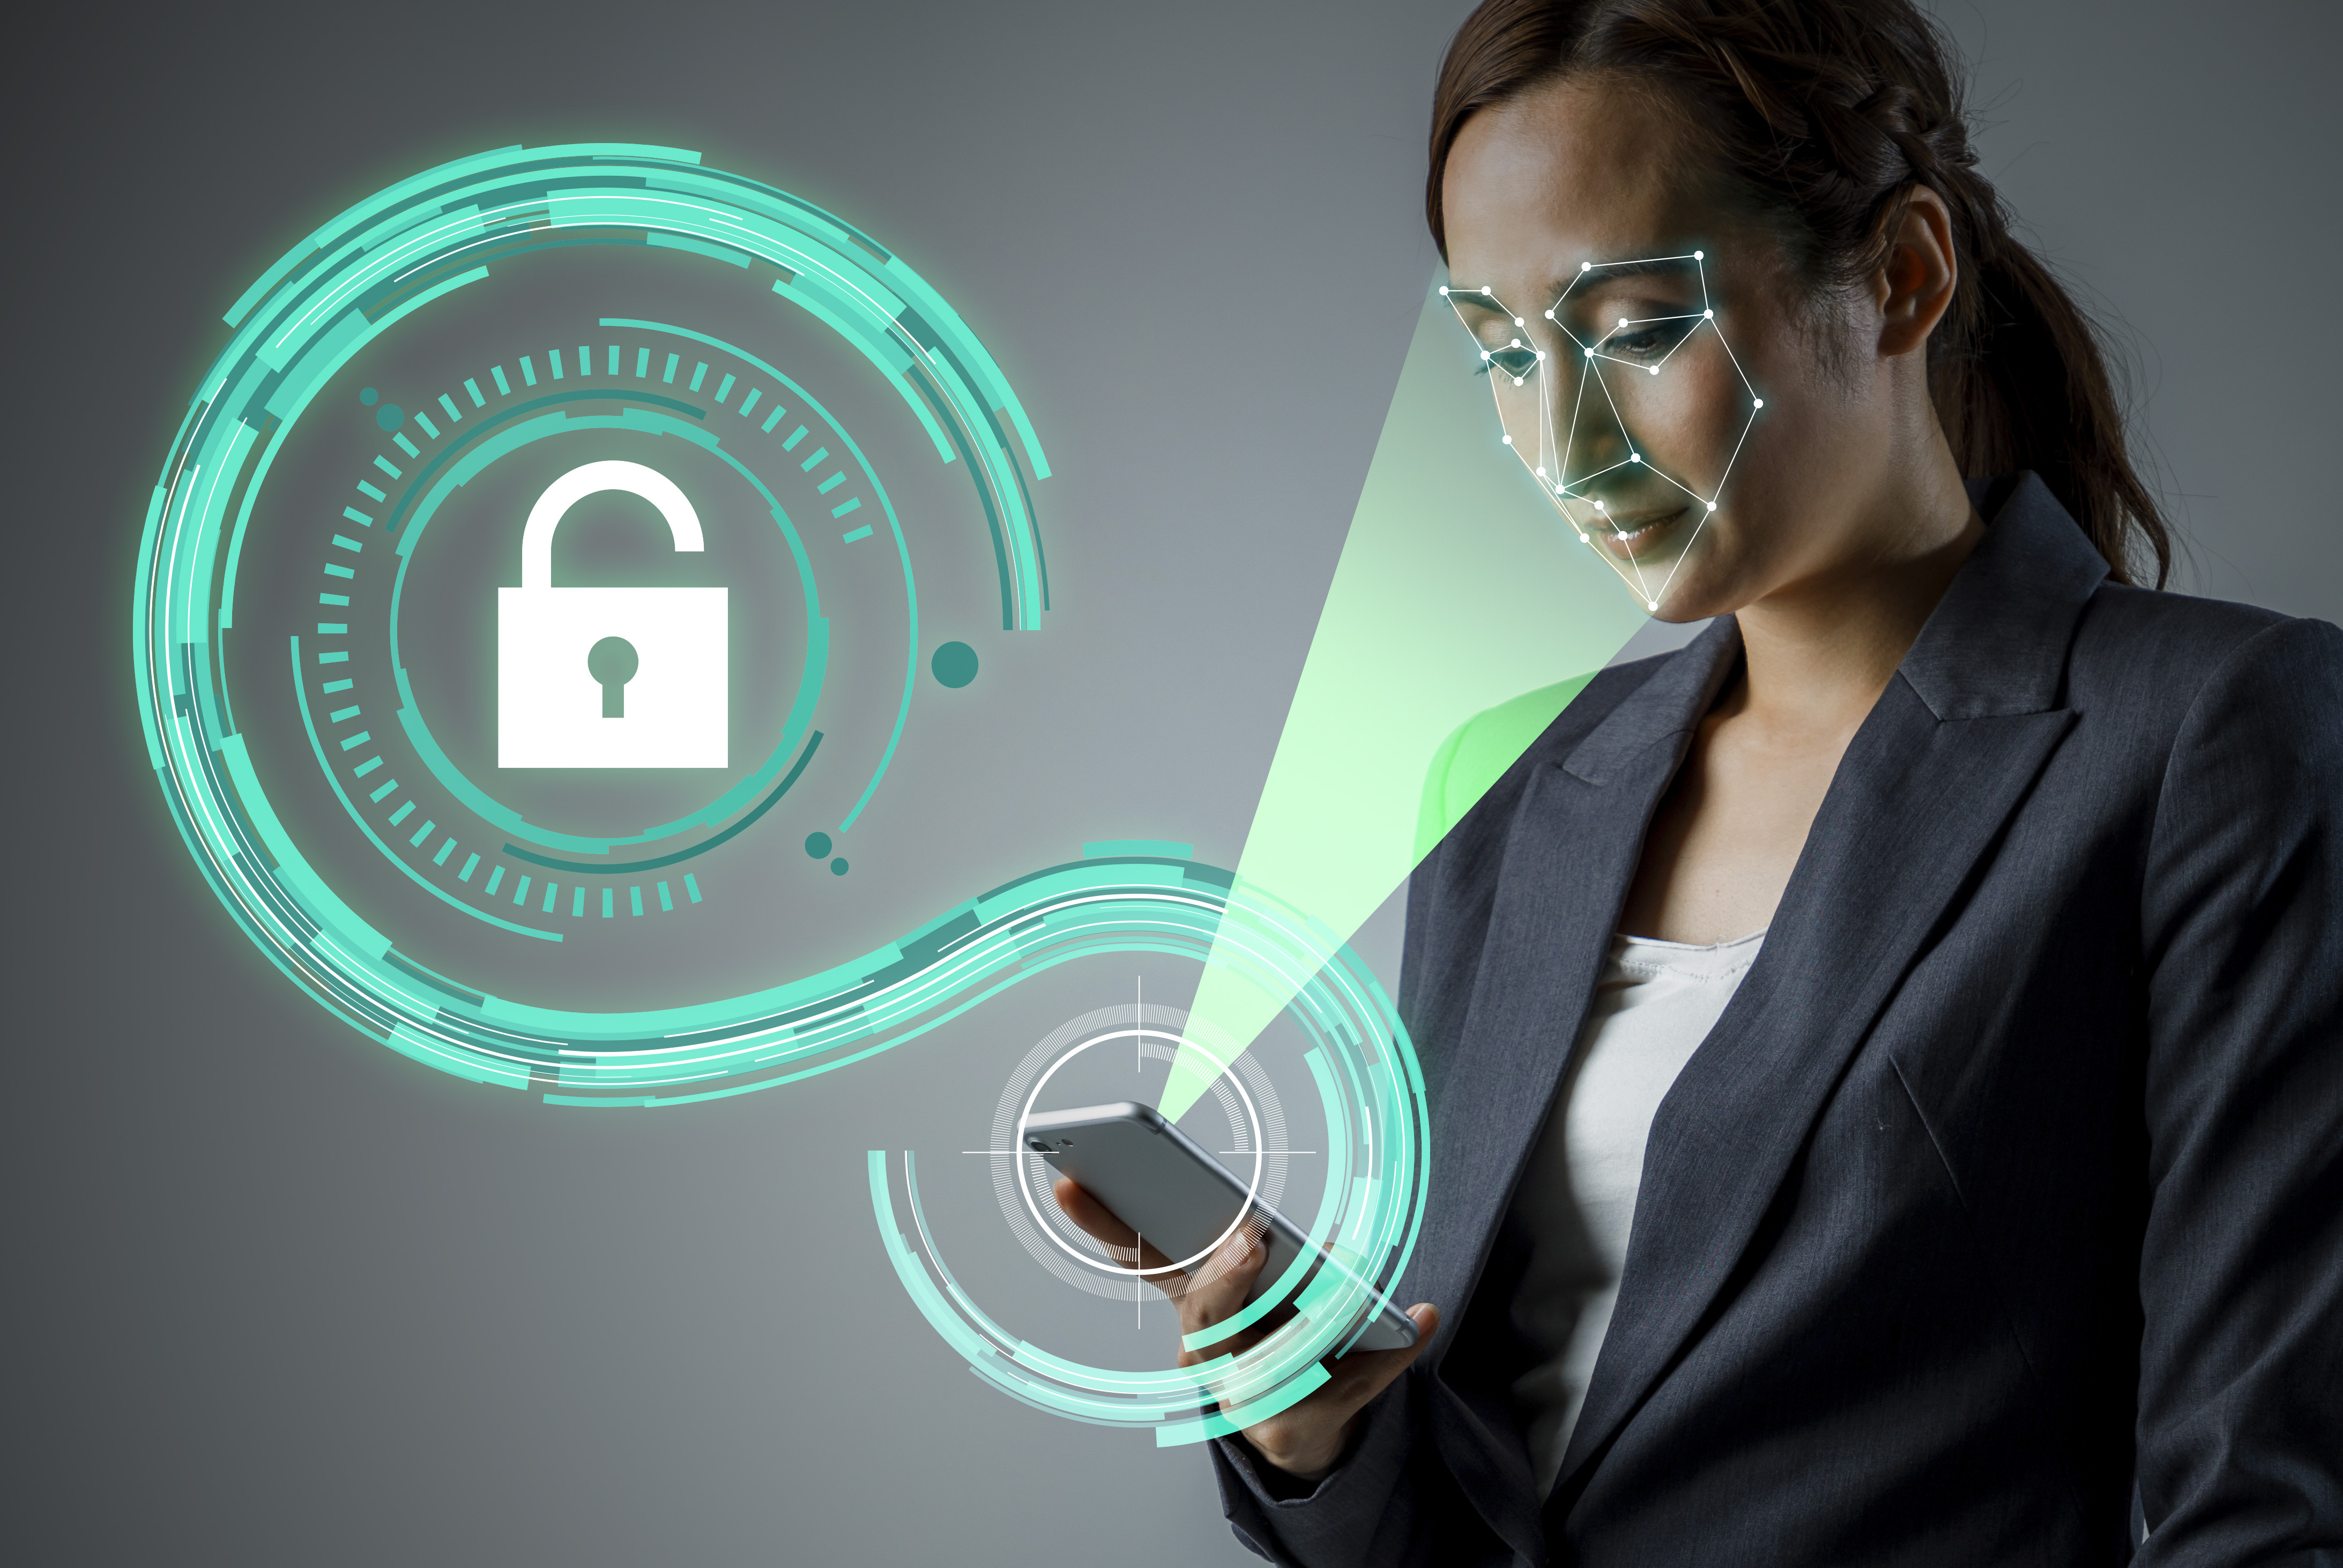 Balancing HR Data and Employee Privacy Rights